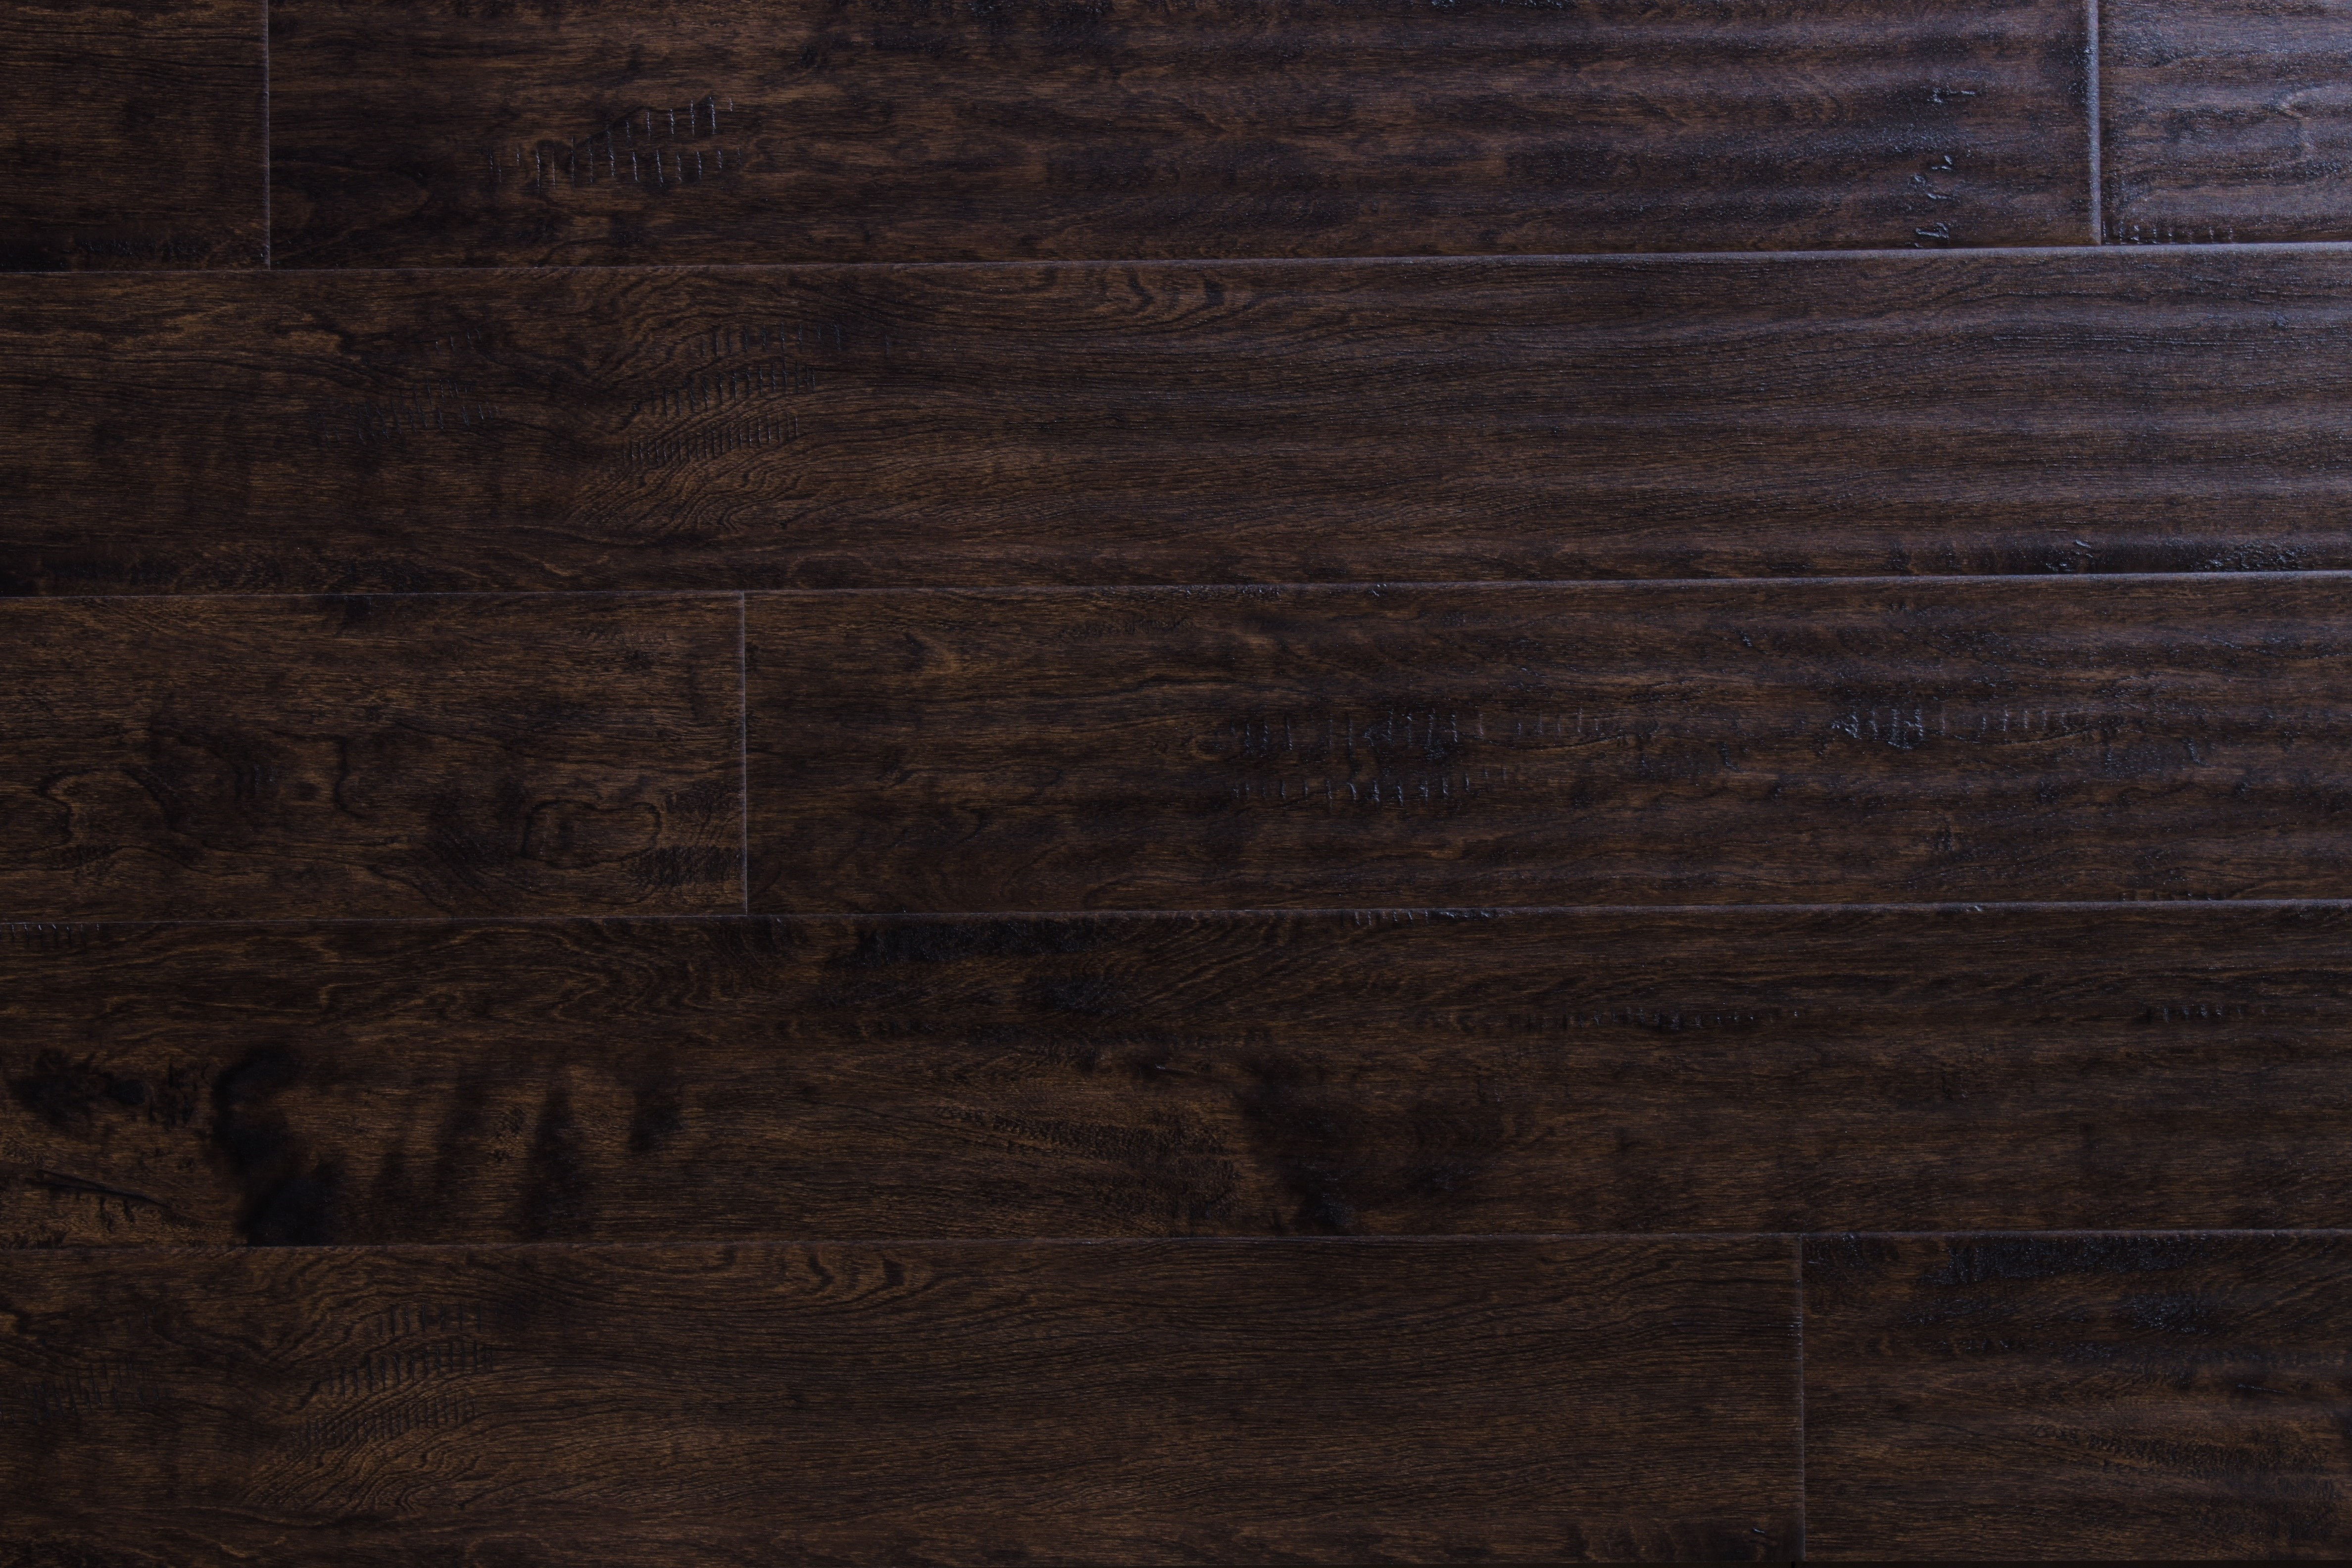 glue down prefinished hardwood flooring of wood flooring free samples available at builddirecta in tailor multi gb 5874277bb8d3c